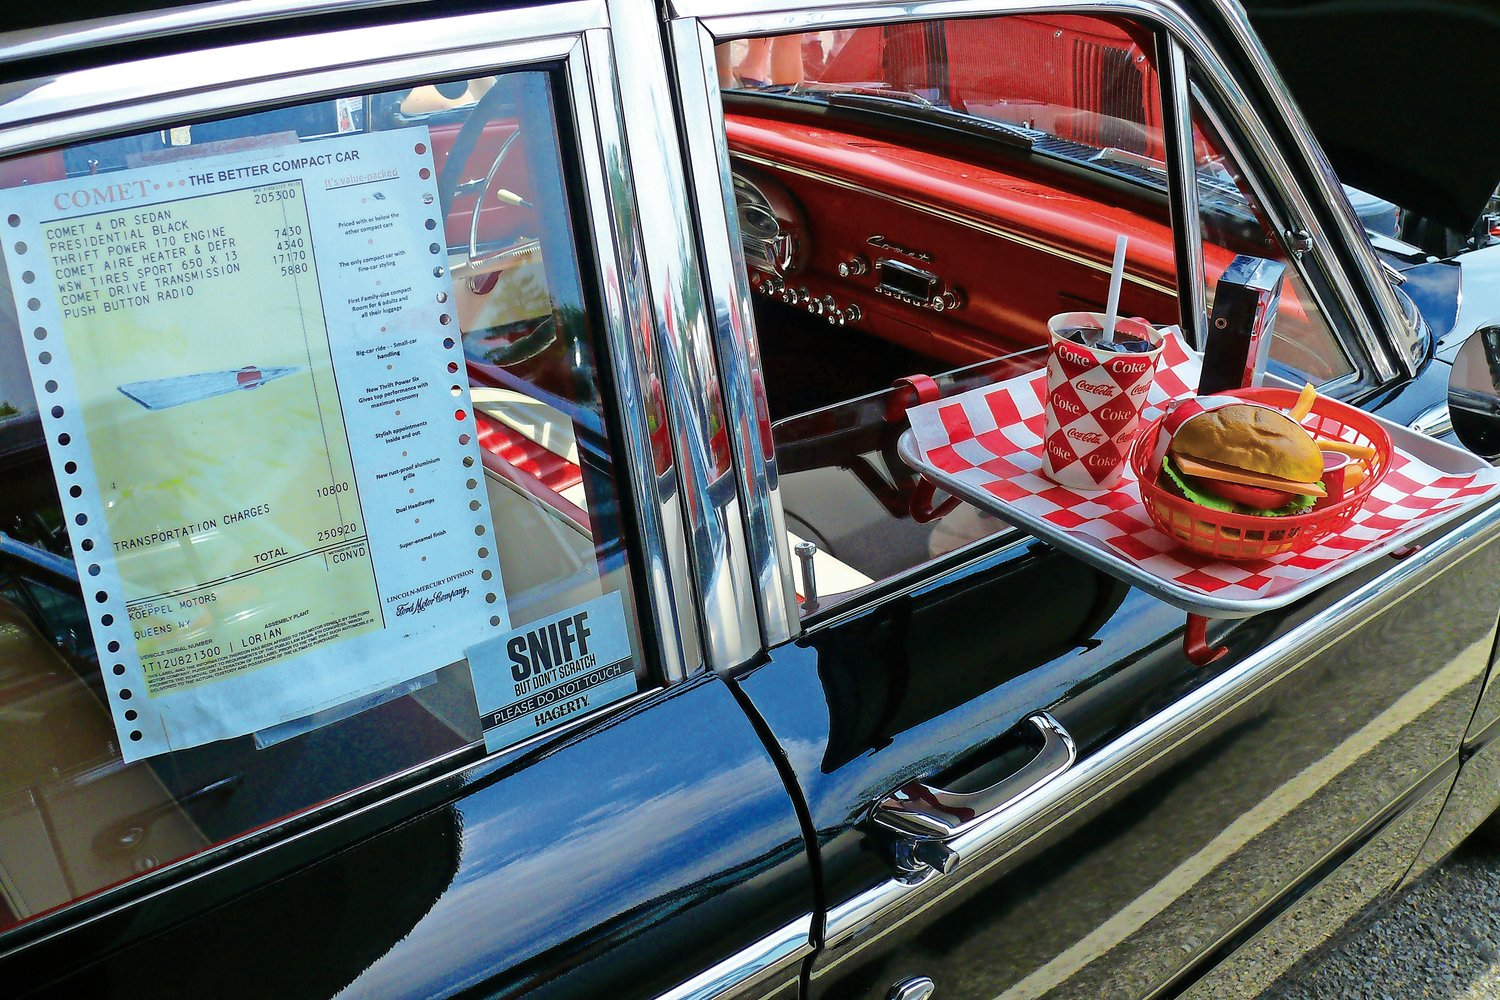 A 1961 Mercury Comet (with its original bill of sale) was parked at the Merrick train station on Sunday. The display of an old-school window service tray — complete with a burger and soda — took fathers on a blast to the past.